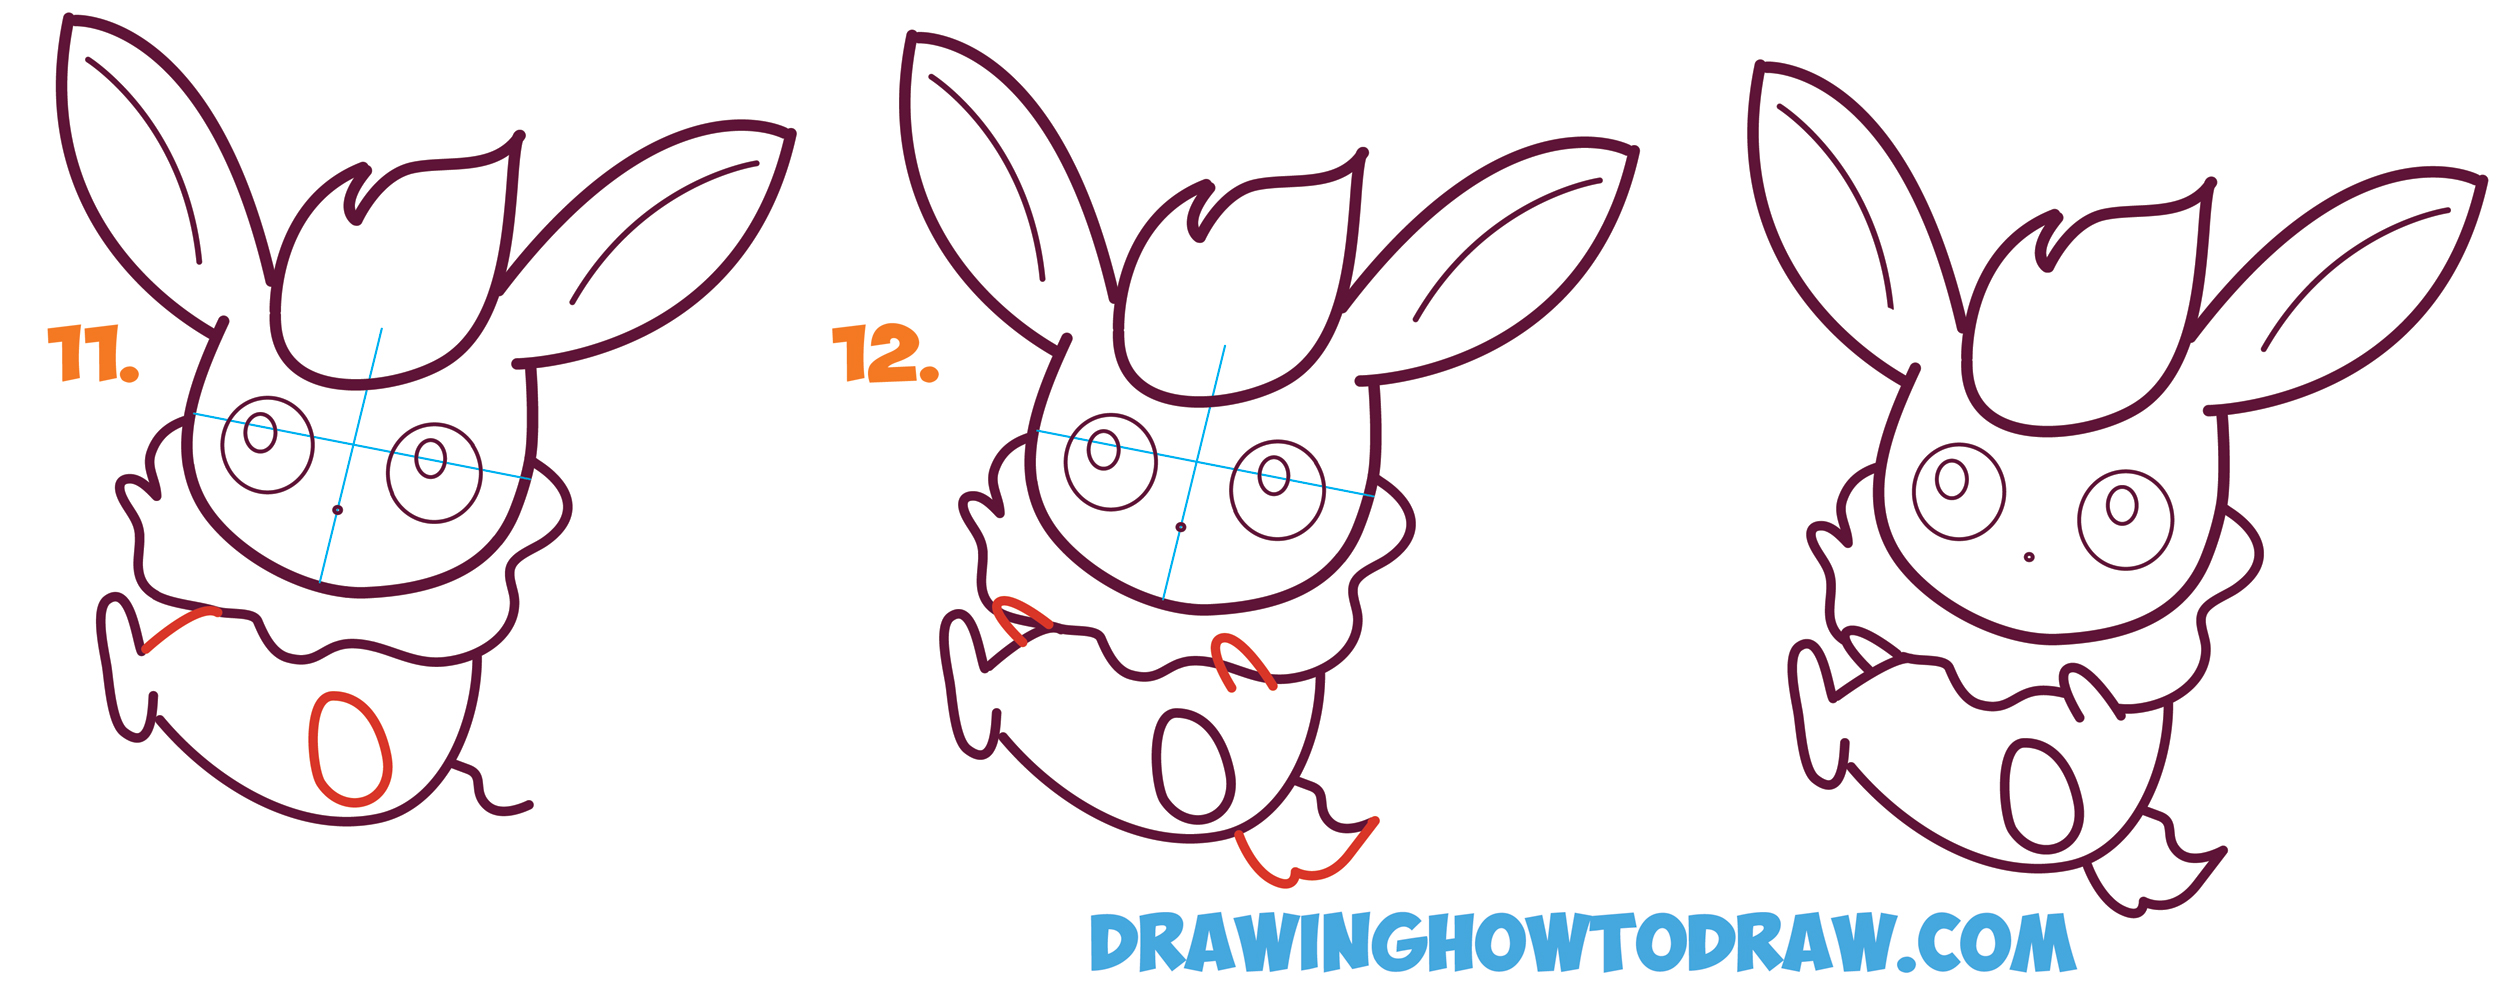 Learn How to Draw in Cute / Kawaii / Chibi / Baby Flareon from Pokemon - Simple Steps Drawing Tutorial for Beginners